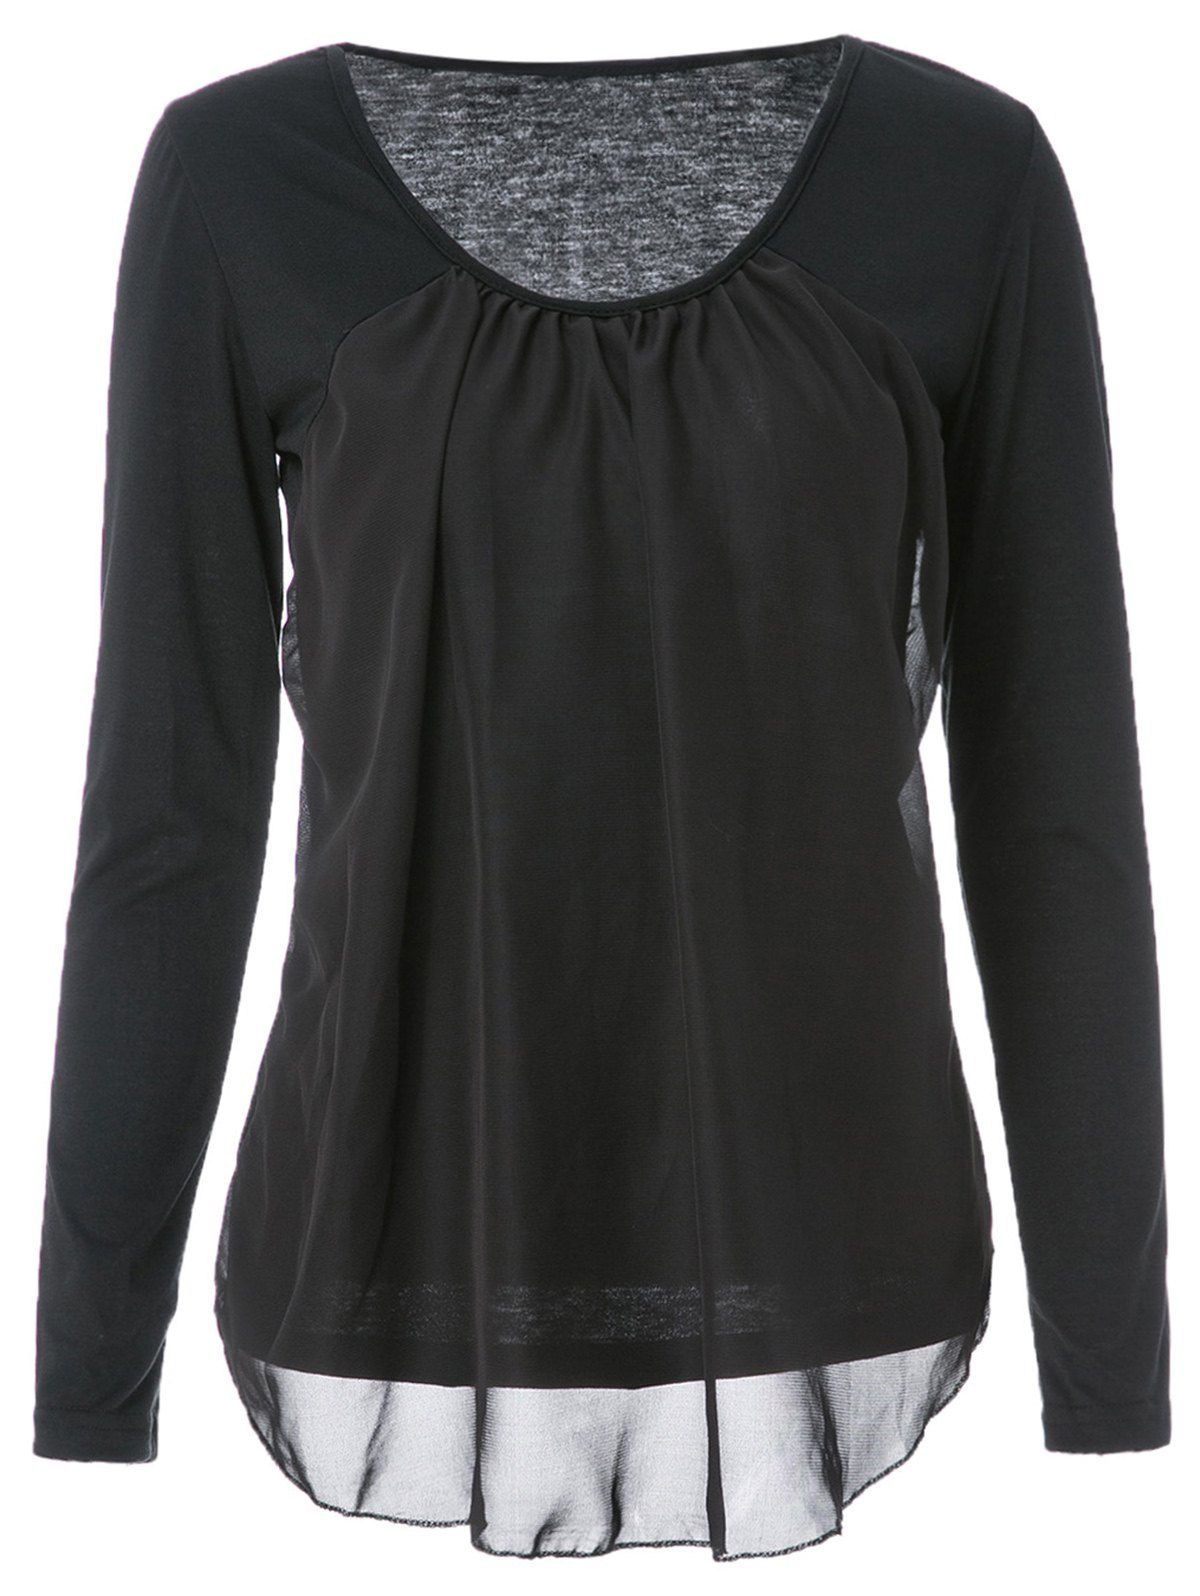 Casual Style Scoop Collar Chiffon Splicing Long Sleeve T-Shirt For Women - BLACK M